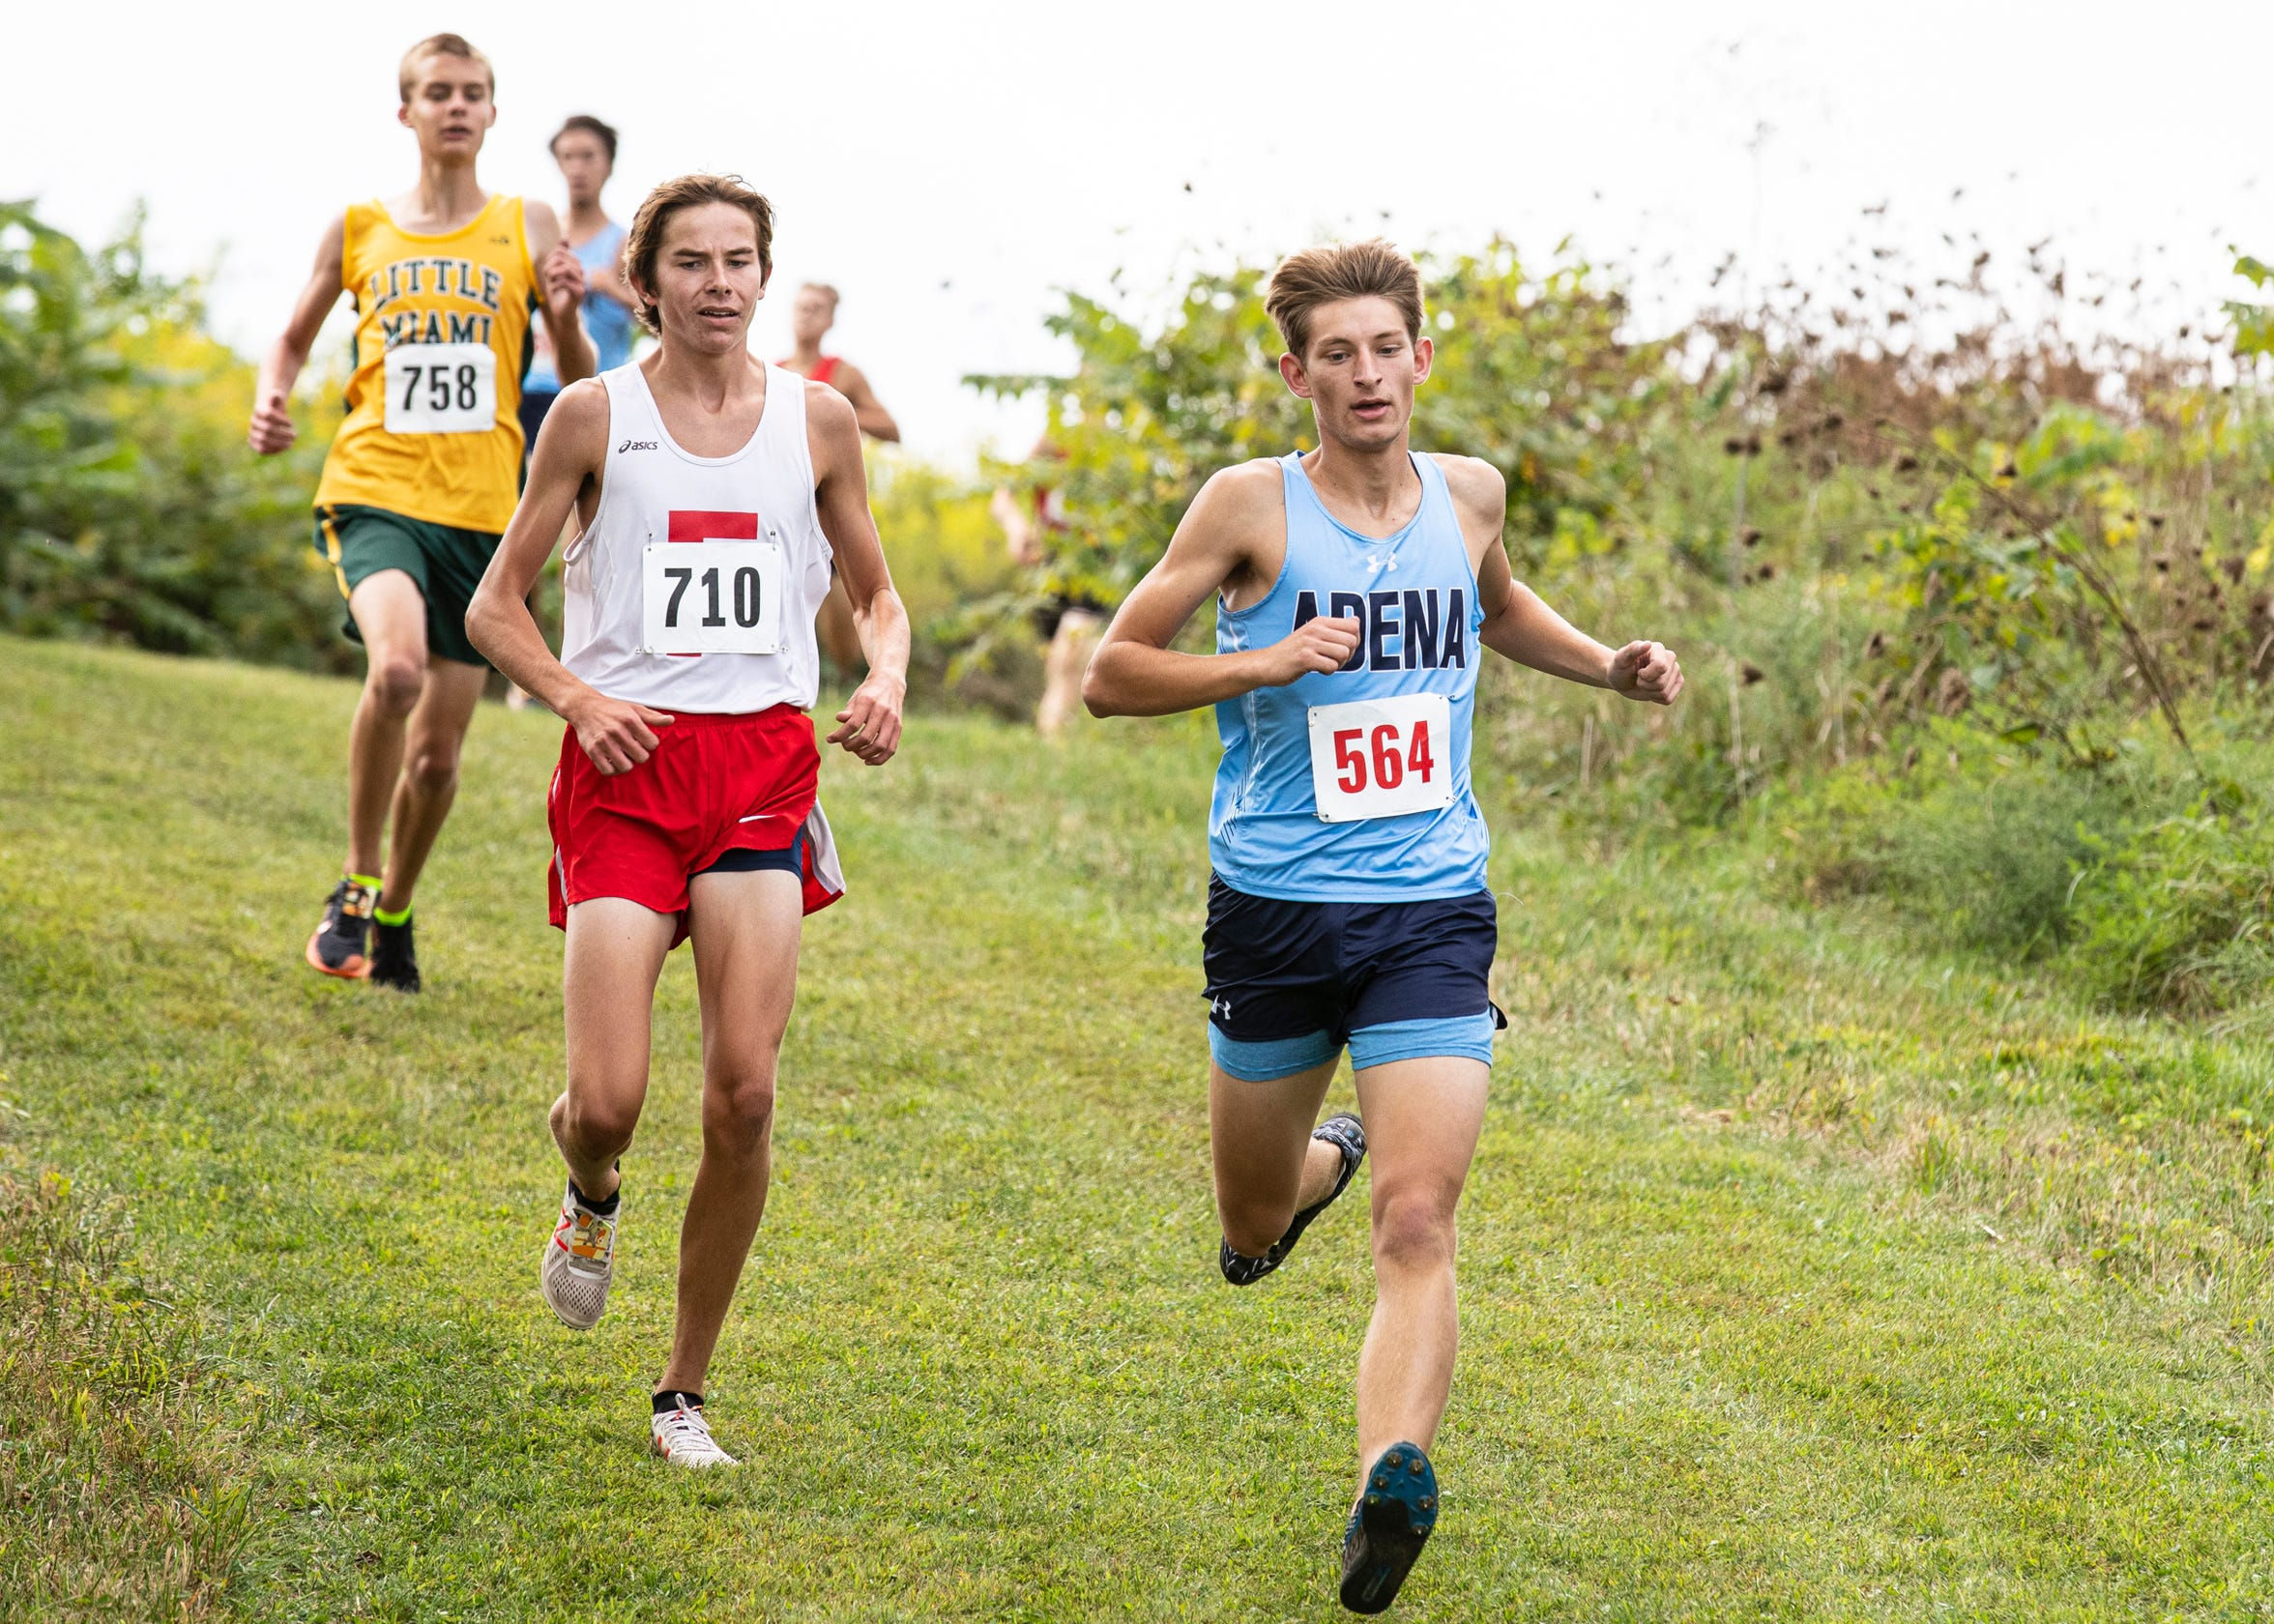 After being injured and falling his junior year at the Zane Trace Invitational, senior Noah Kanniard proved he was one of the top area runners by placing seventh out of 219 runners and took the top placing of all the local runners.